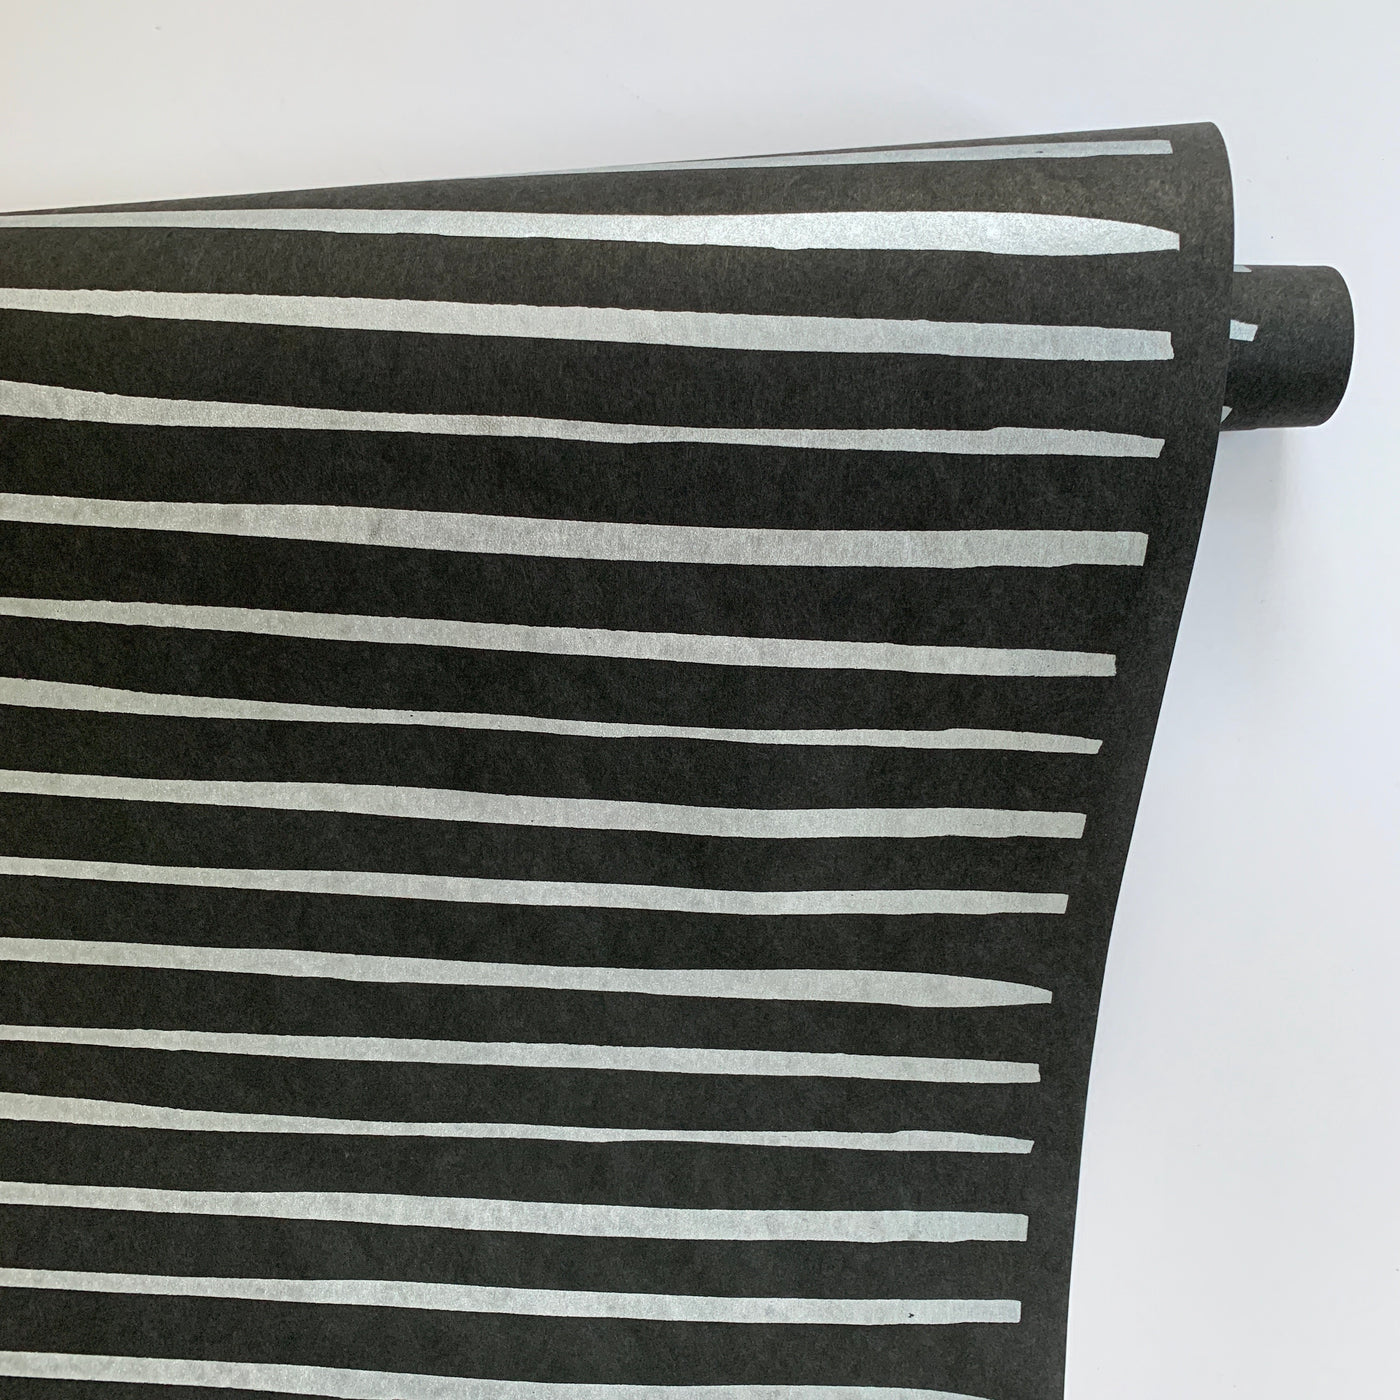 Striped Paper - Silver on Black